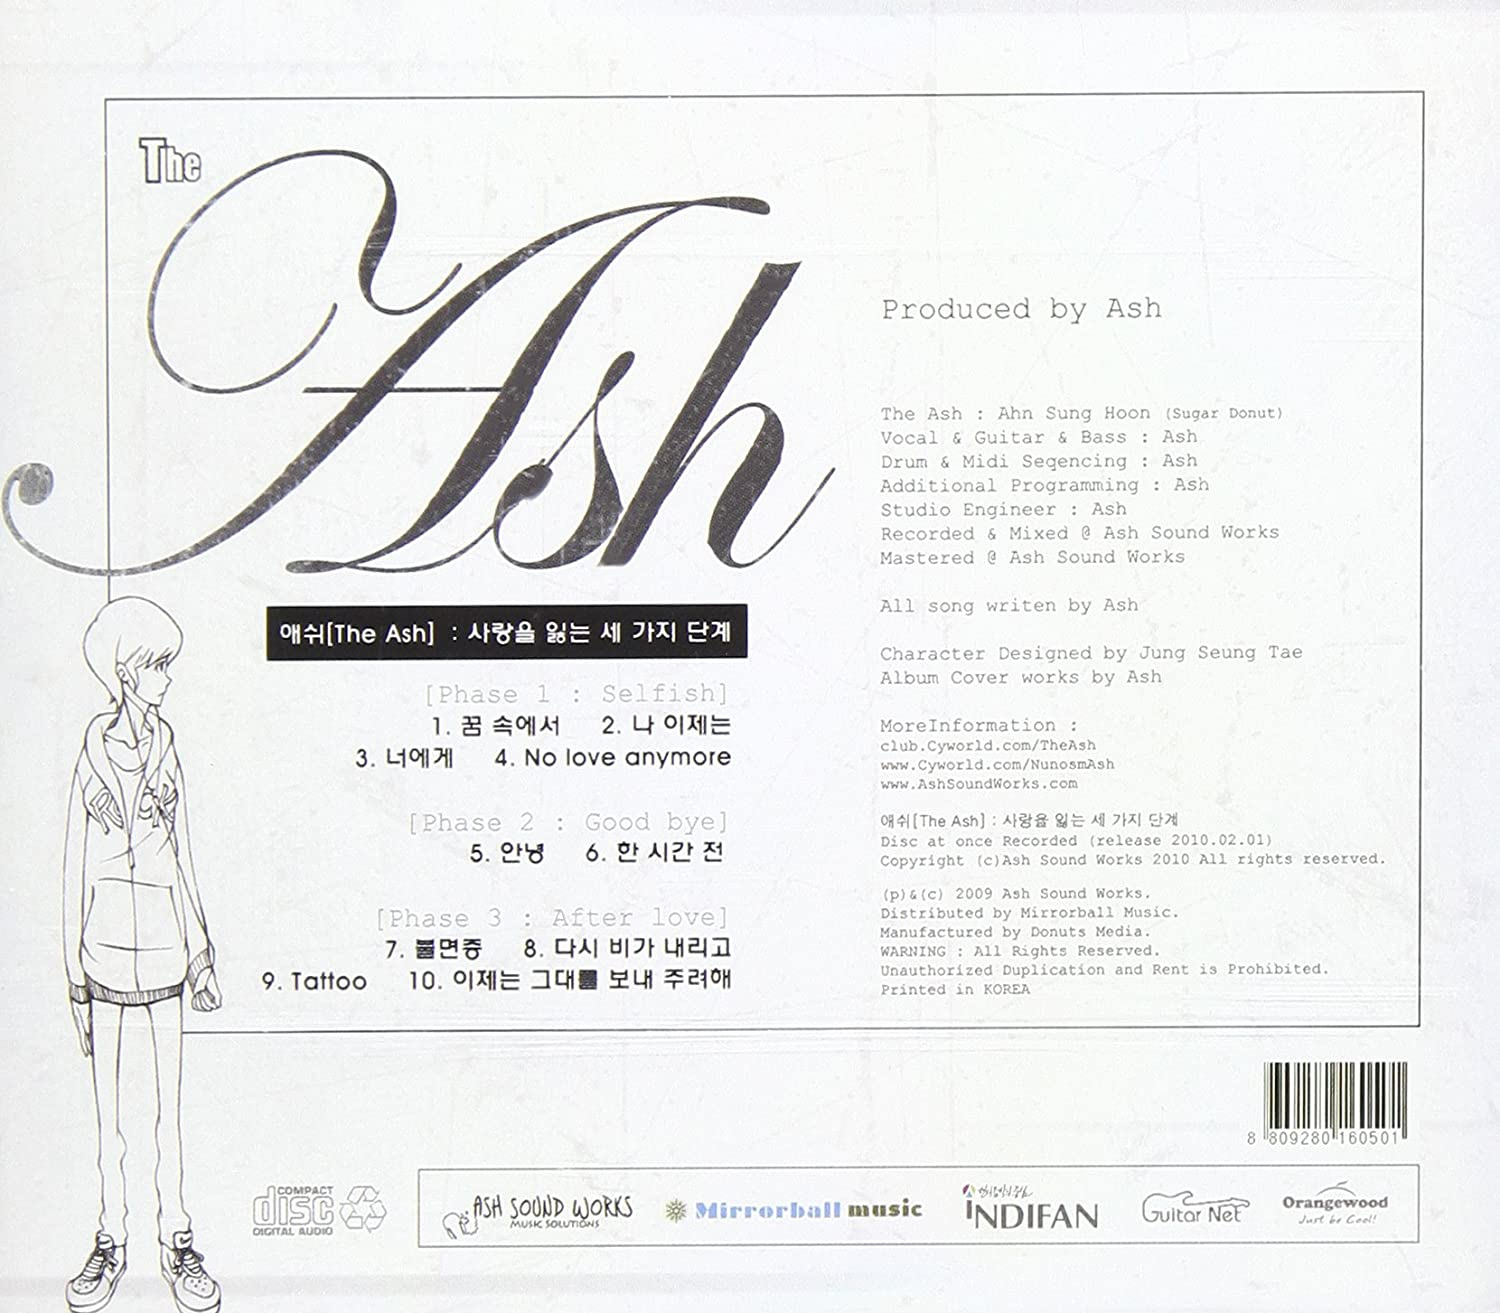 The Ash - The 3 Phases of Love Lost [Mirrorball Music] [Korea 2010